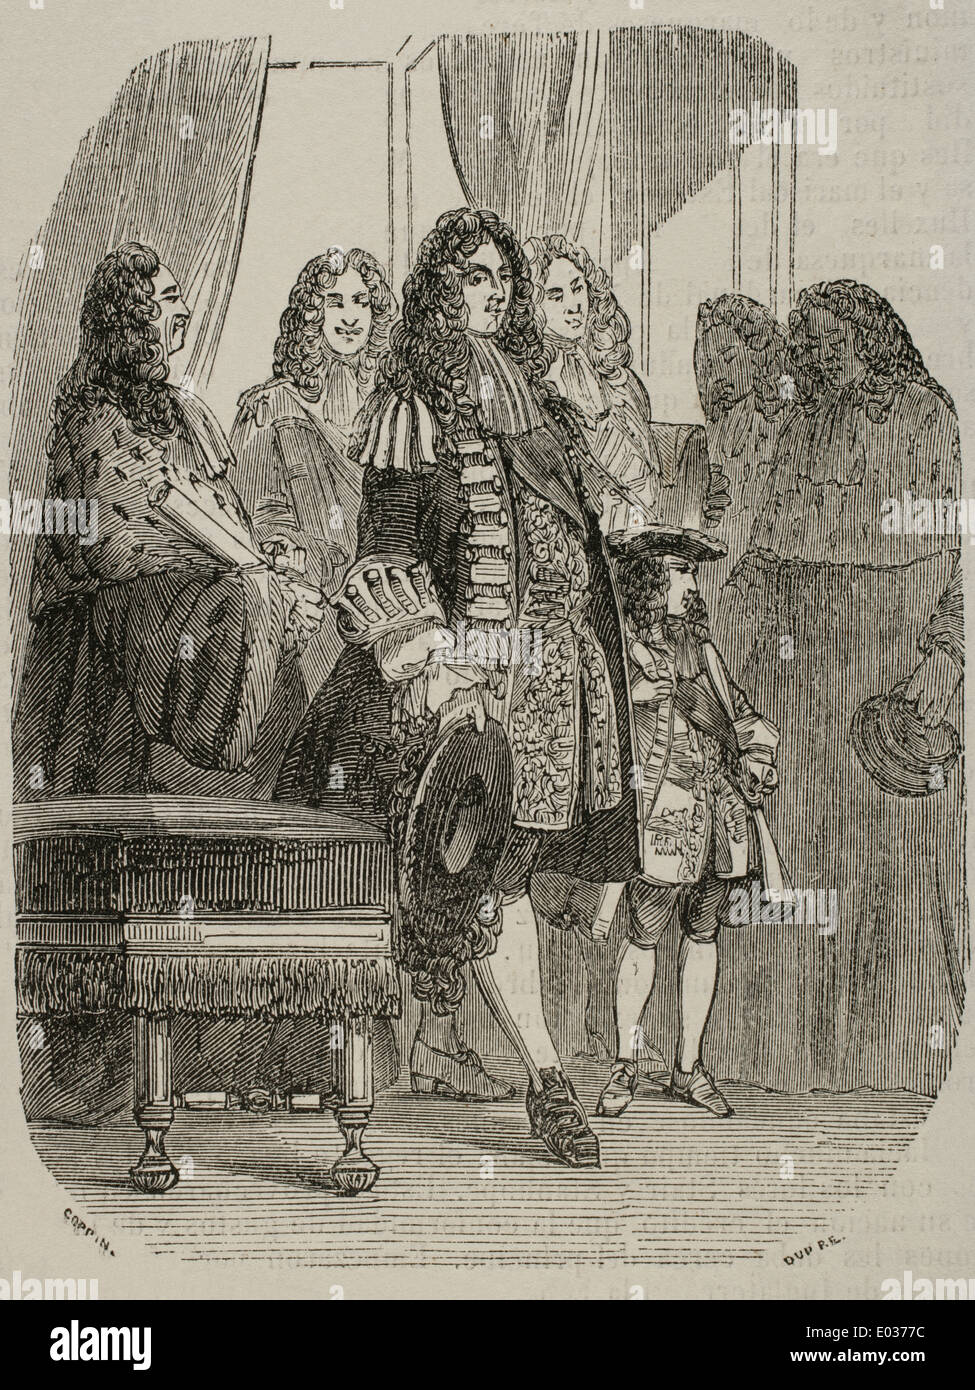 The Regent Philippe of Orleans (1674-1723) with Louis XV (1710-1774) as a child in the Parliament. Engraving. - Stock Image